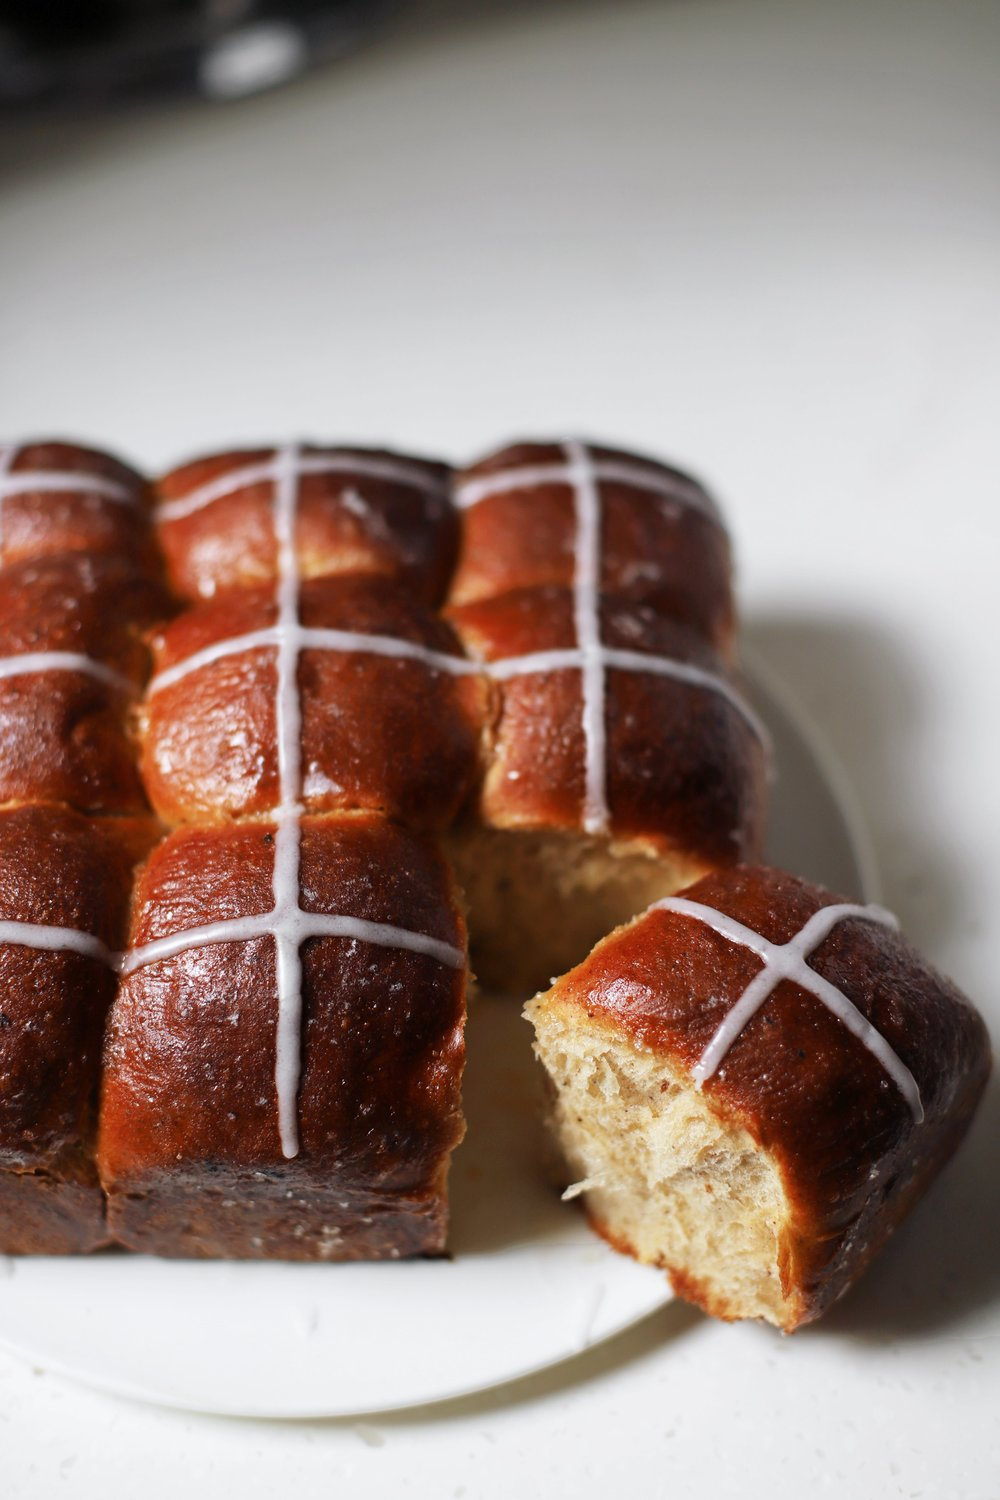 orange blossom banana hot cross buns